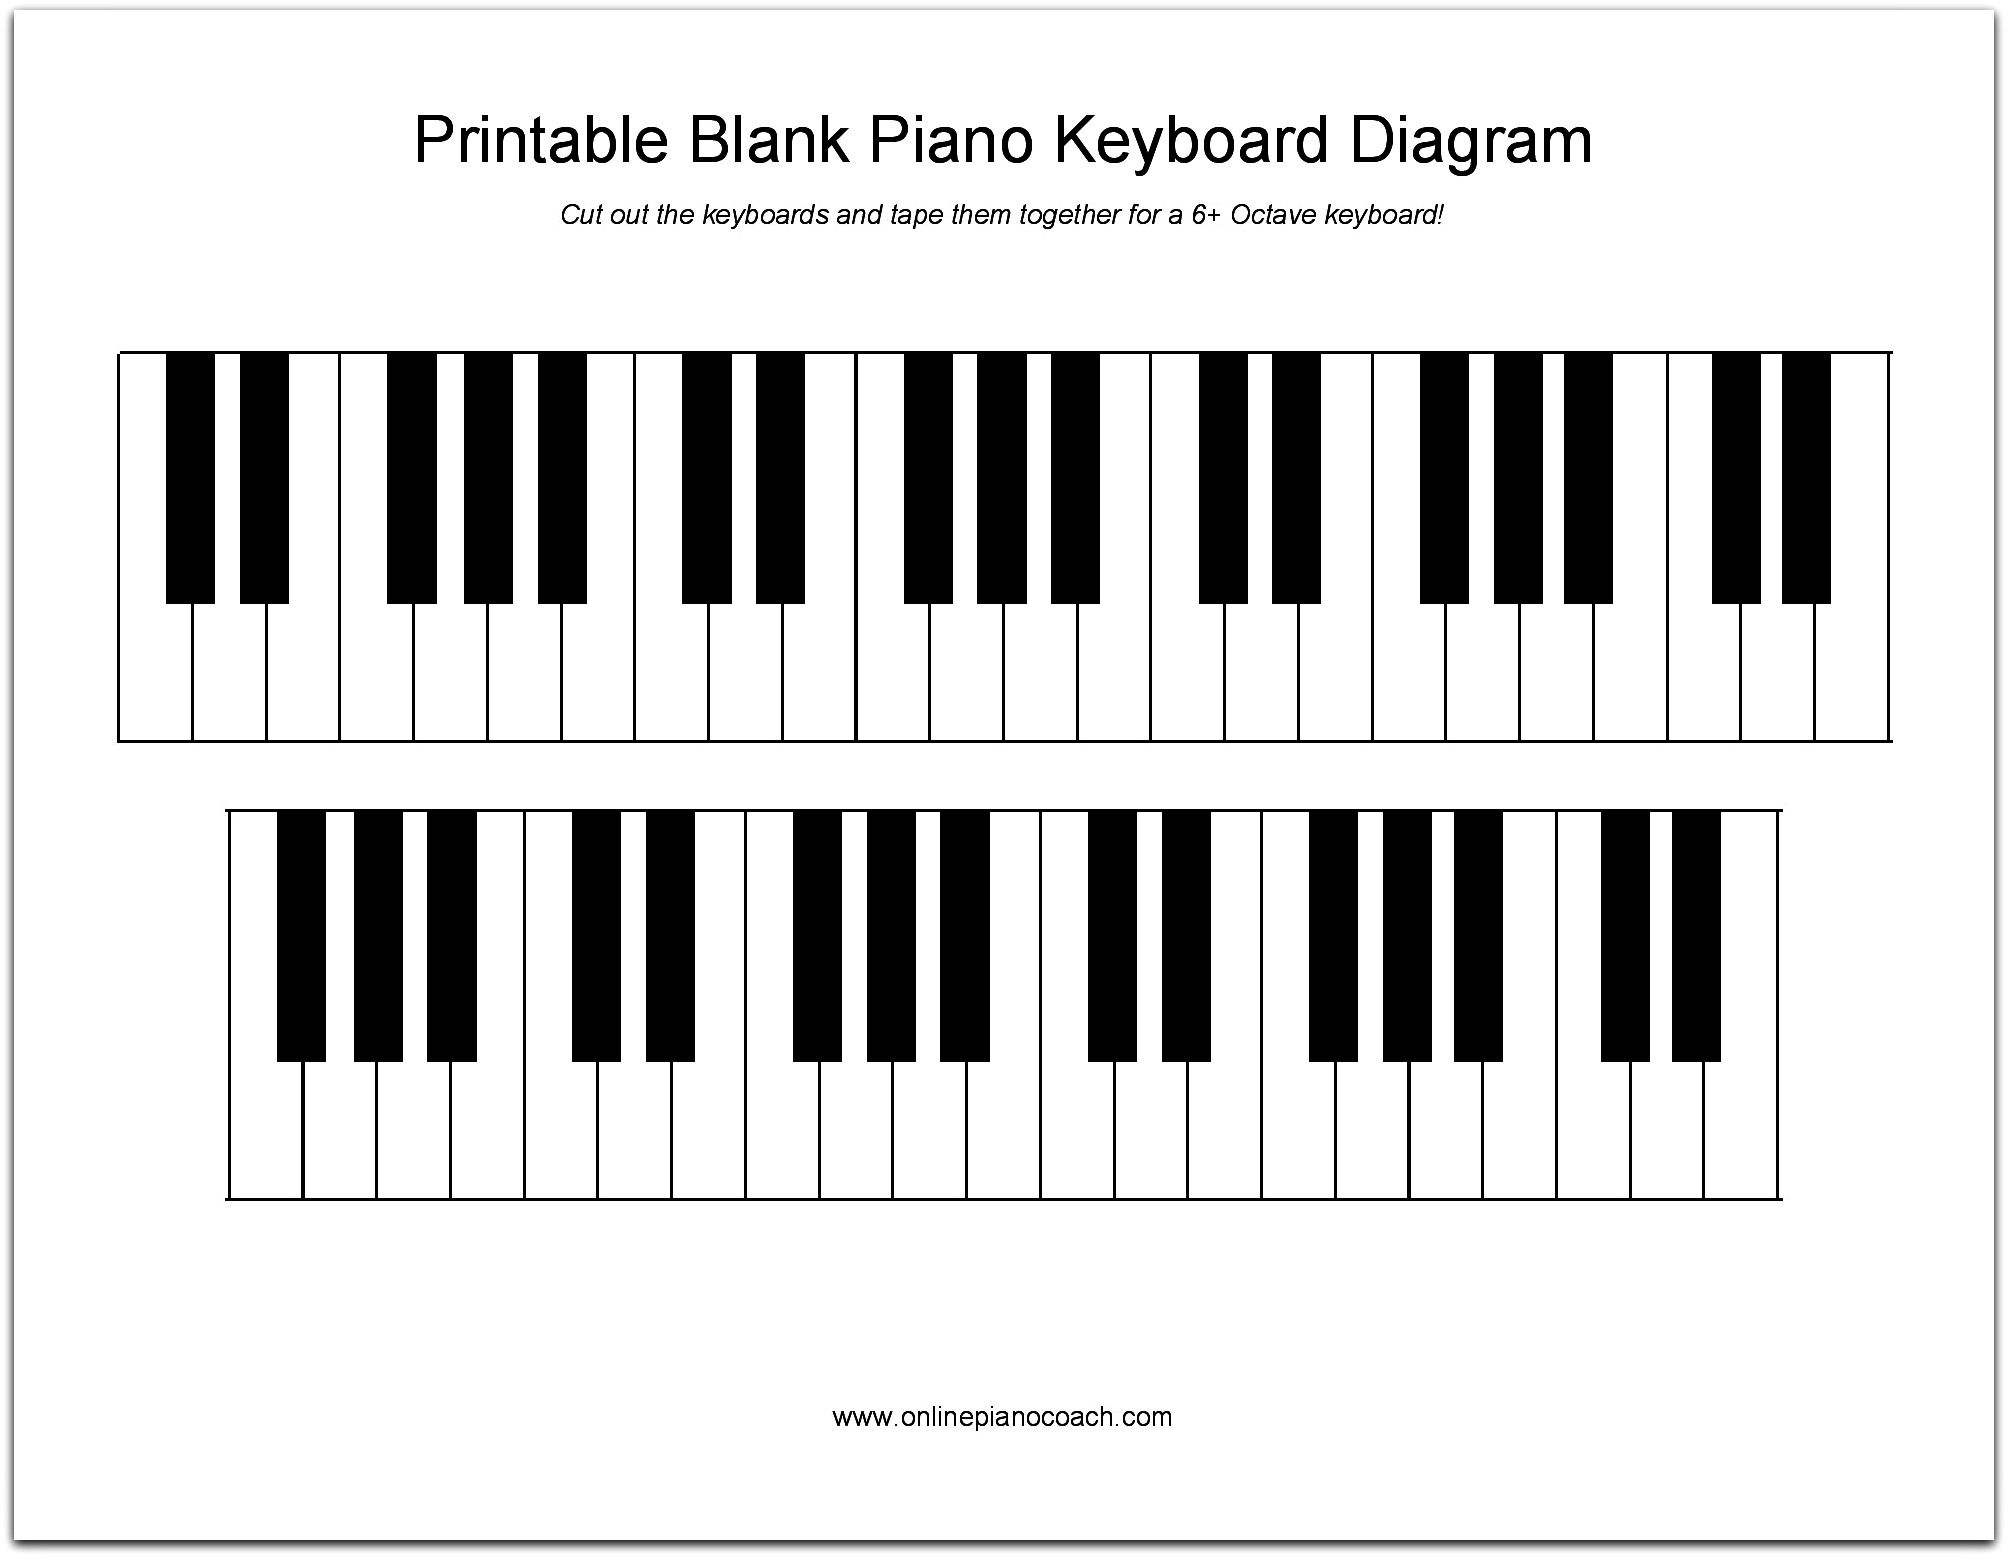 Printable Piano Keyboard Diagram In 2020